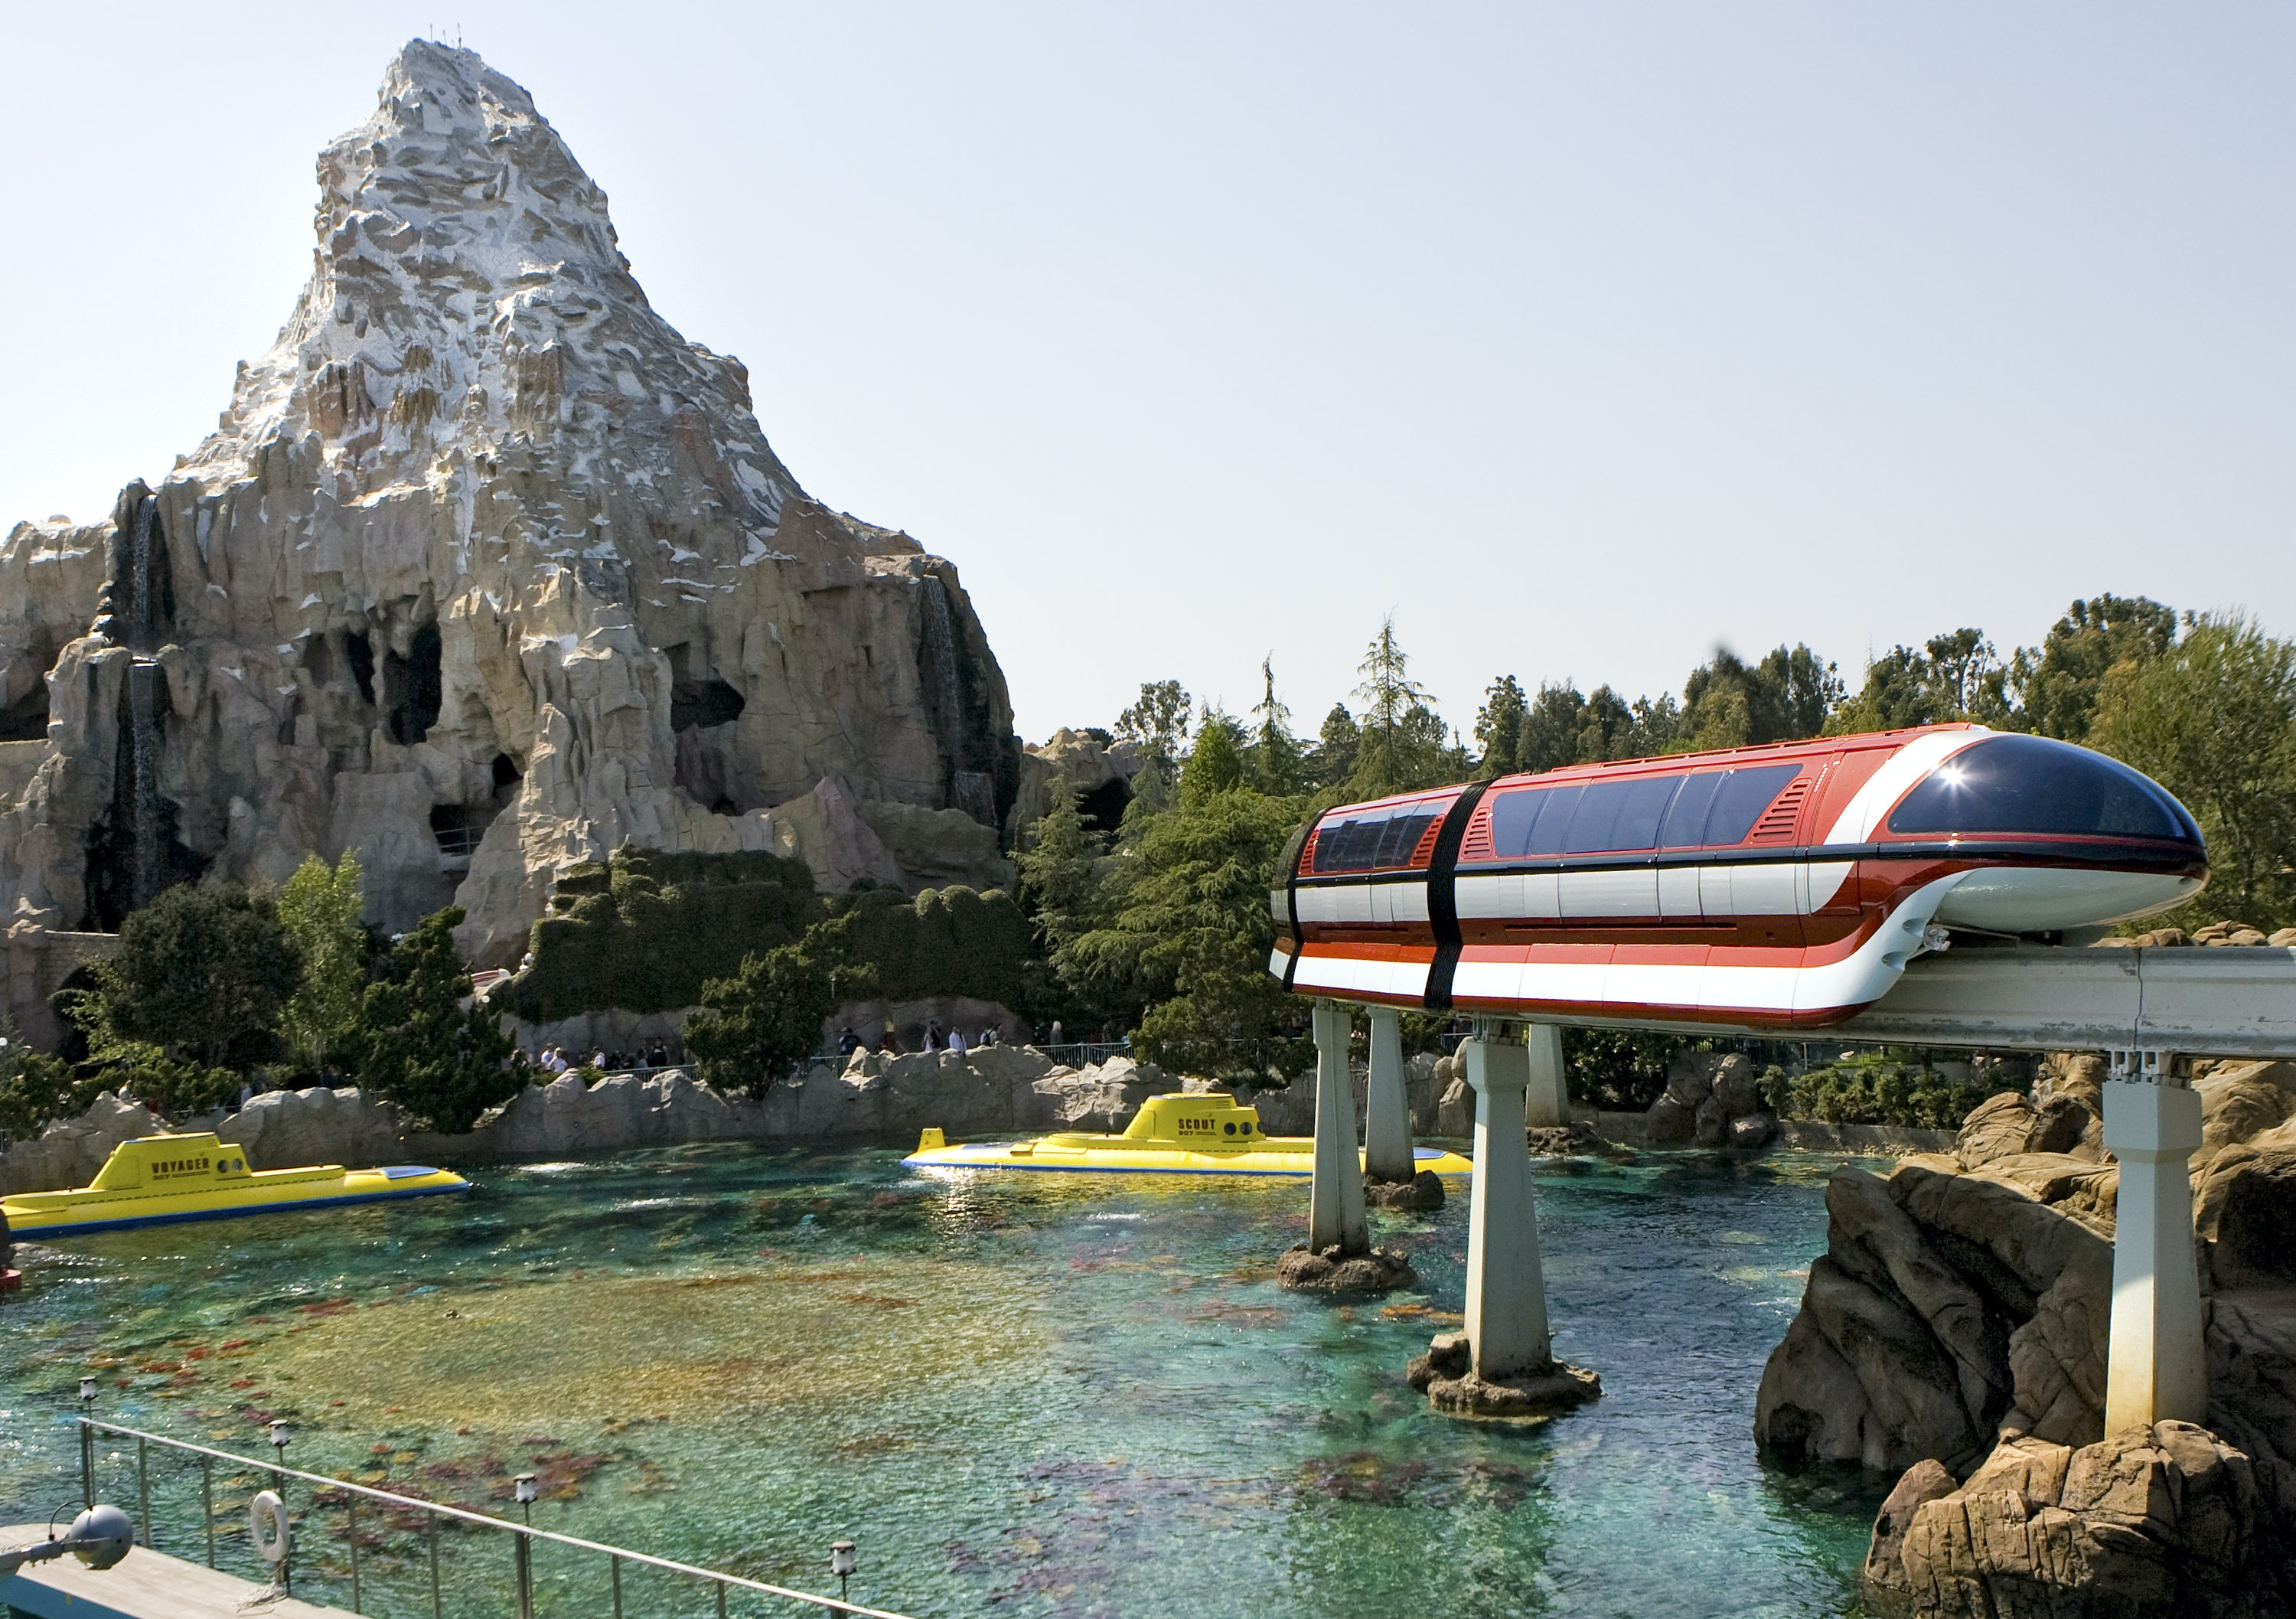 Hop on the Matterhorn Bobsleds at sunset or during the fireworks for prime views.